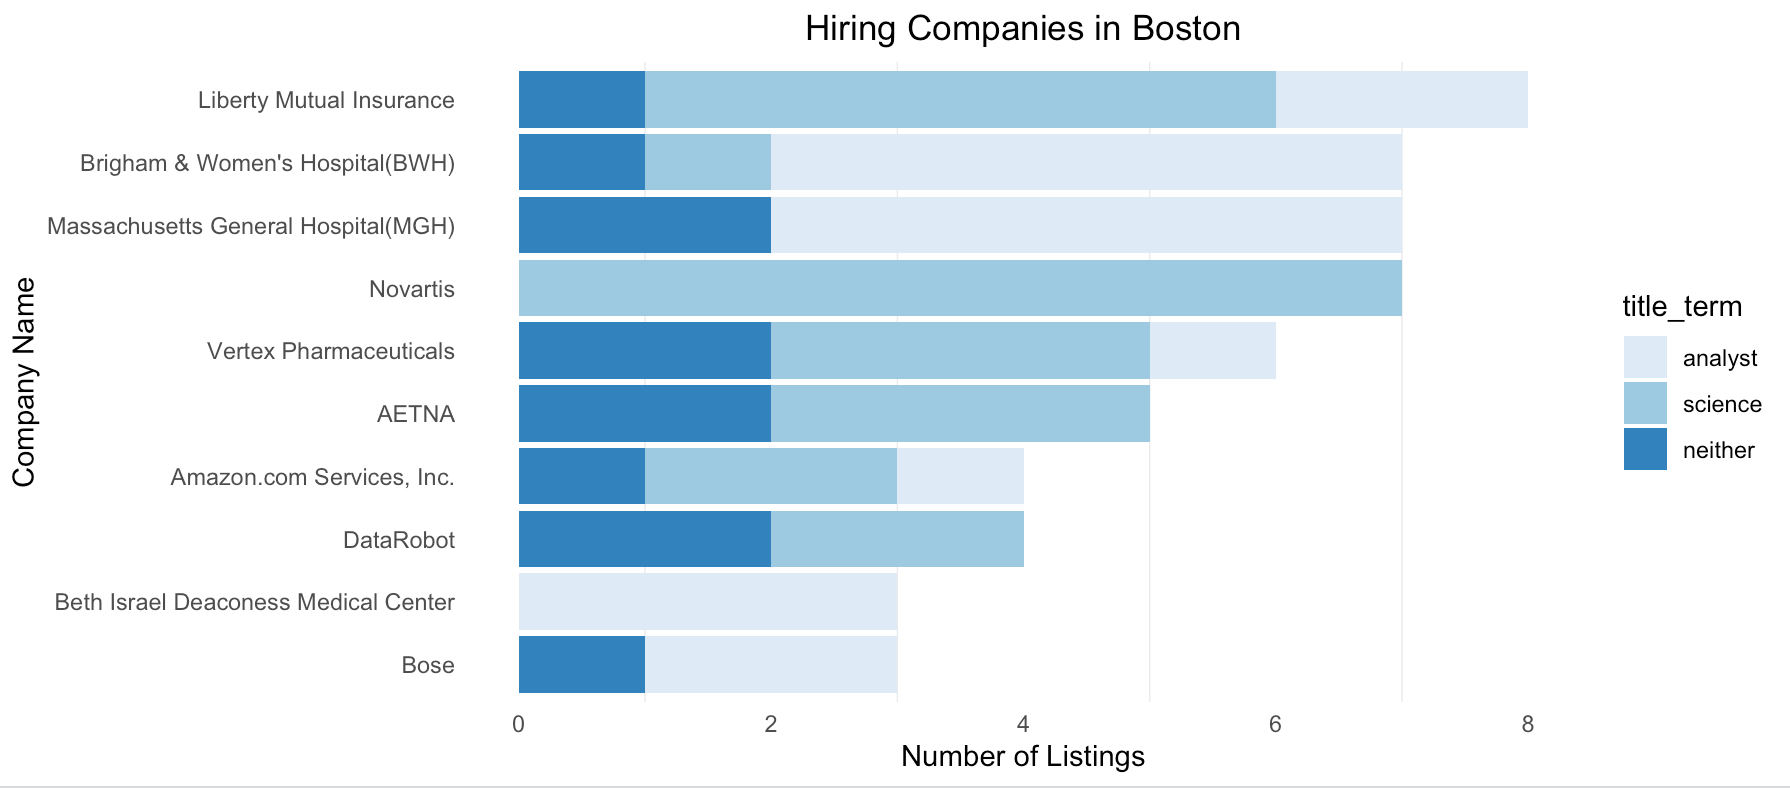 Boston Job Market for Data Analysts and Scientists : August